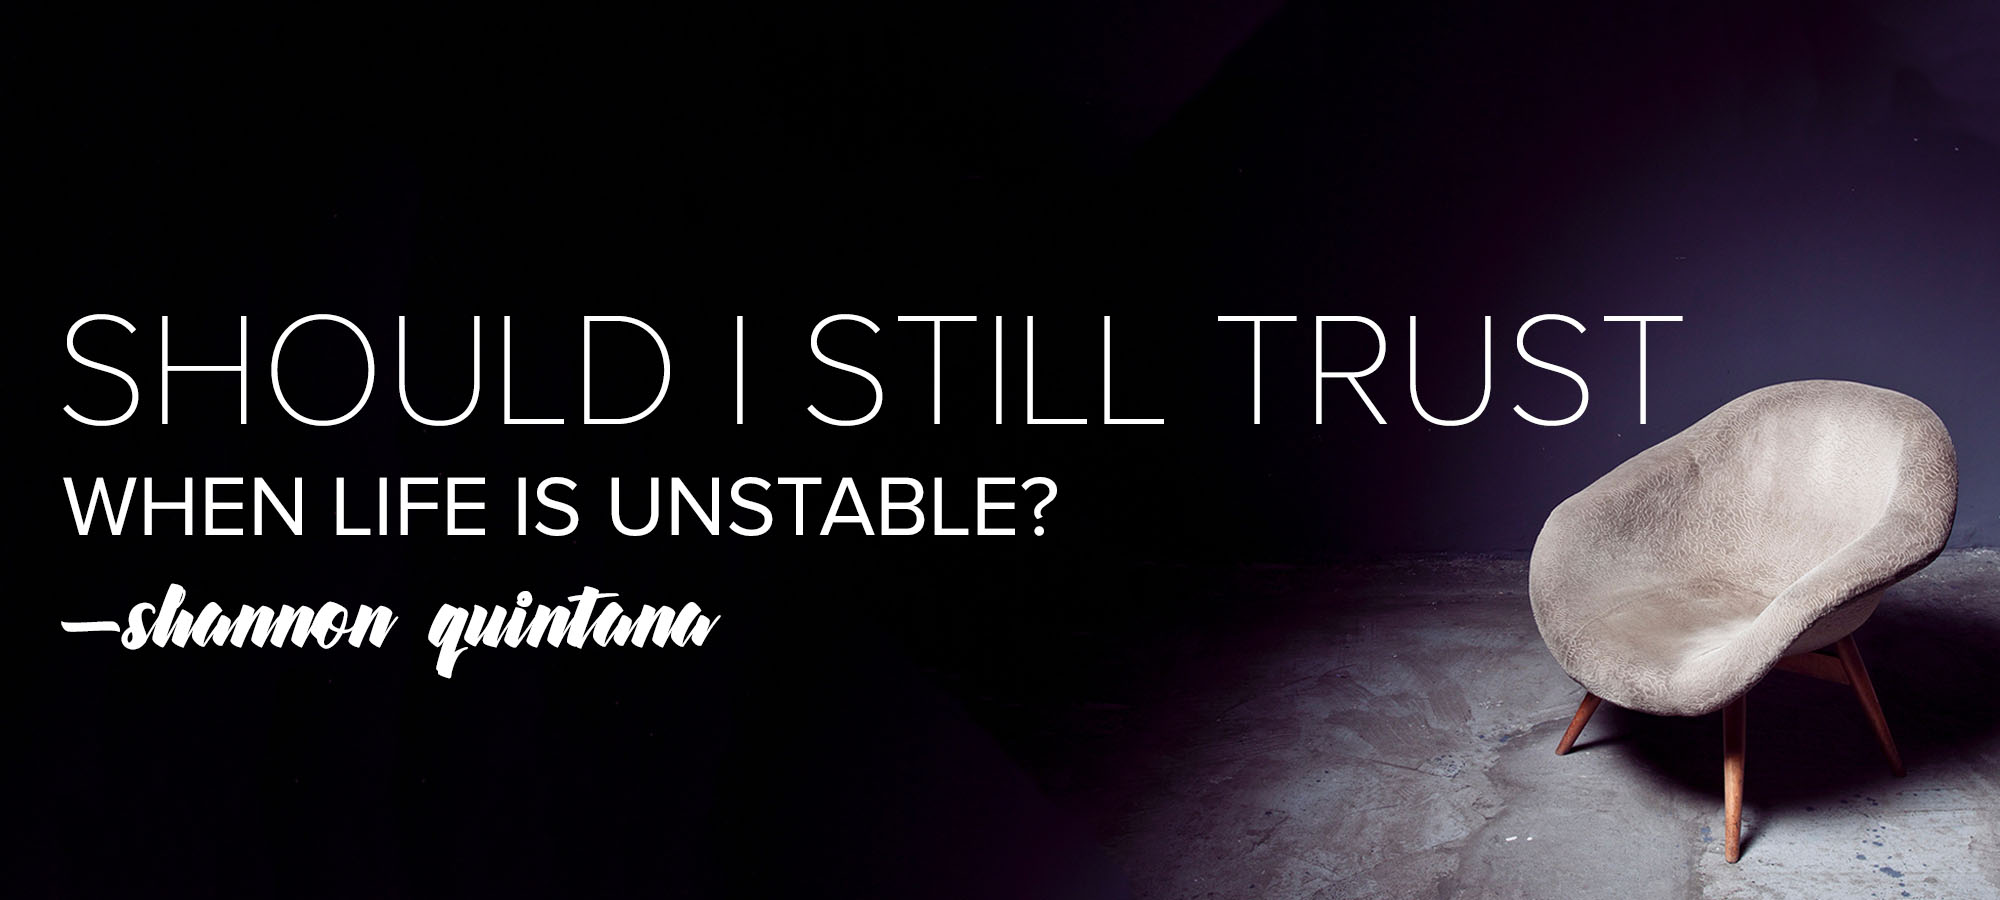 Should I Still Trust When Life is Unstable?